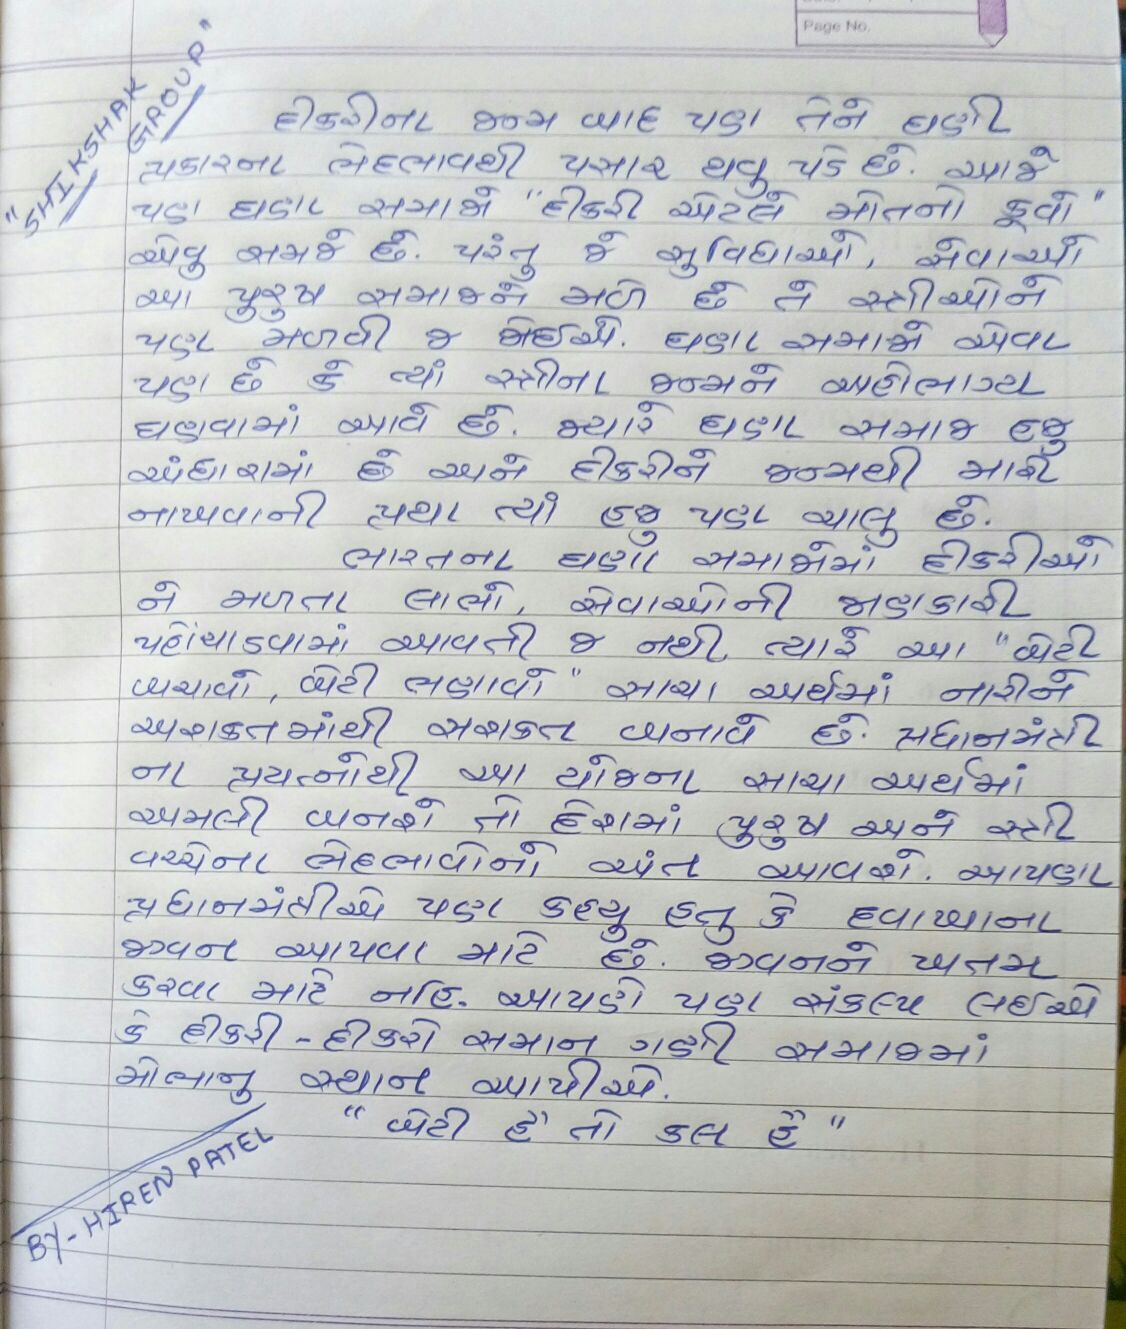 essay writing on my mother to write an essay about your mom my  my mother essay in gujarati my mother essay in gujarati khichdi reportspdf web fc com home